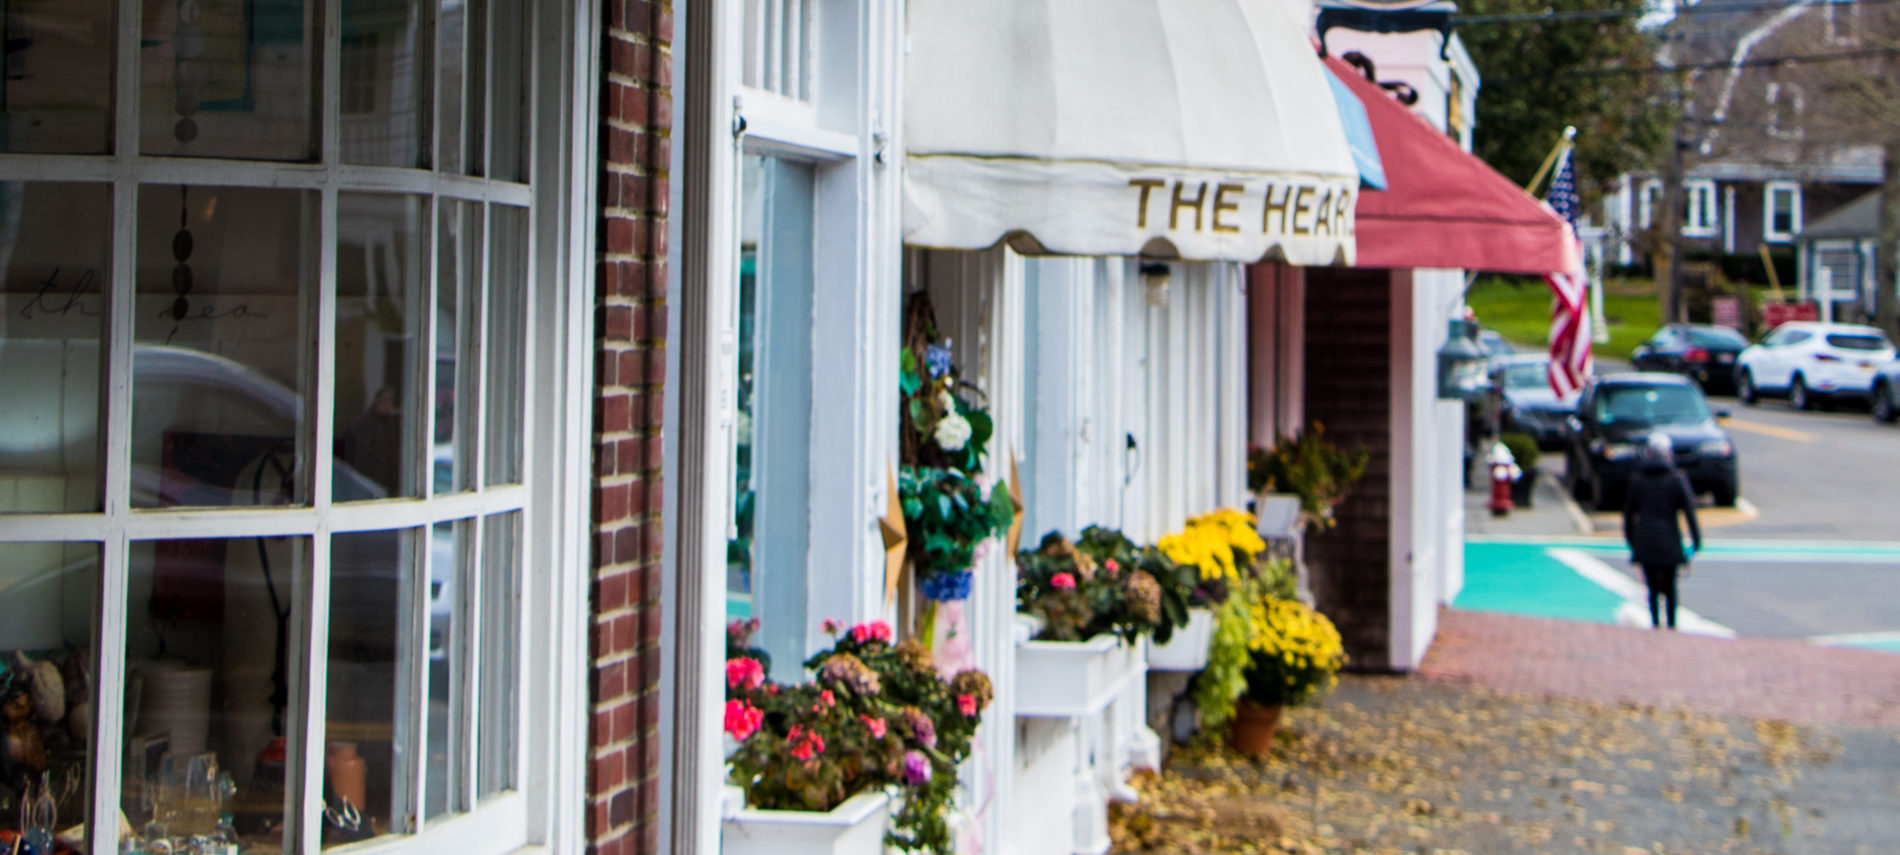 Storefronts and the sidewalk on Main Street in Chatham, MA